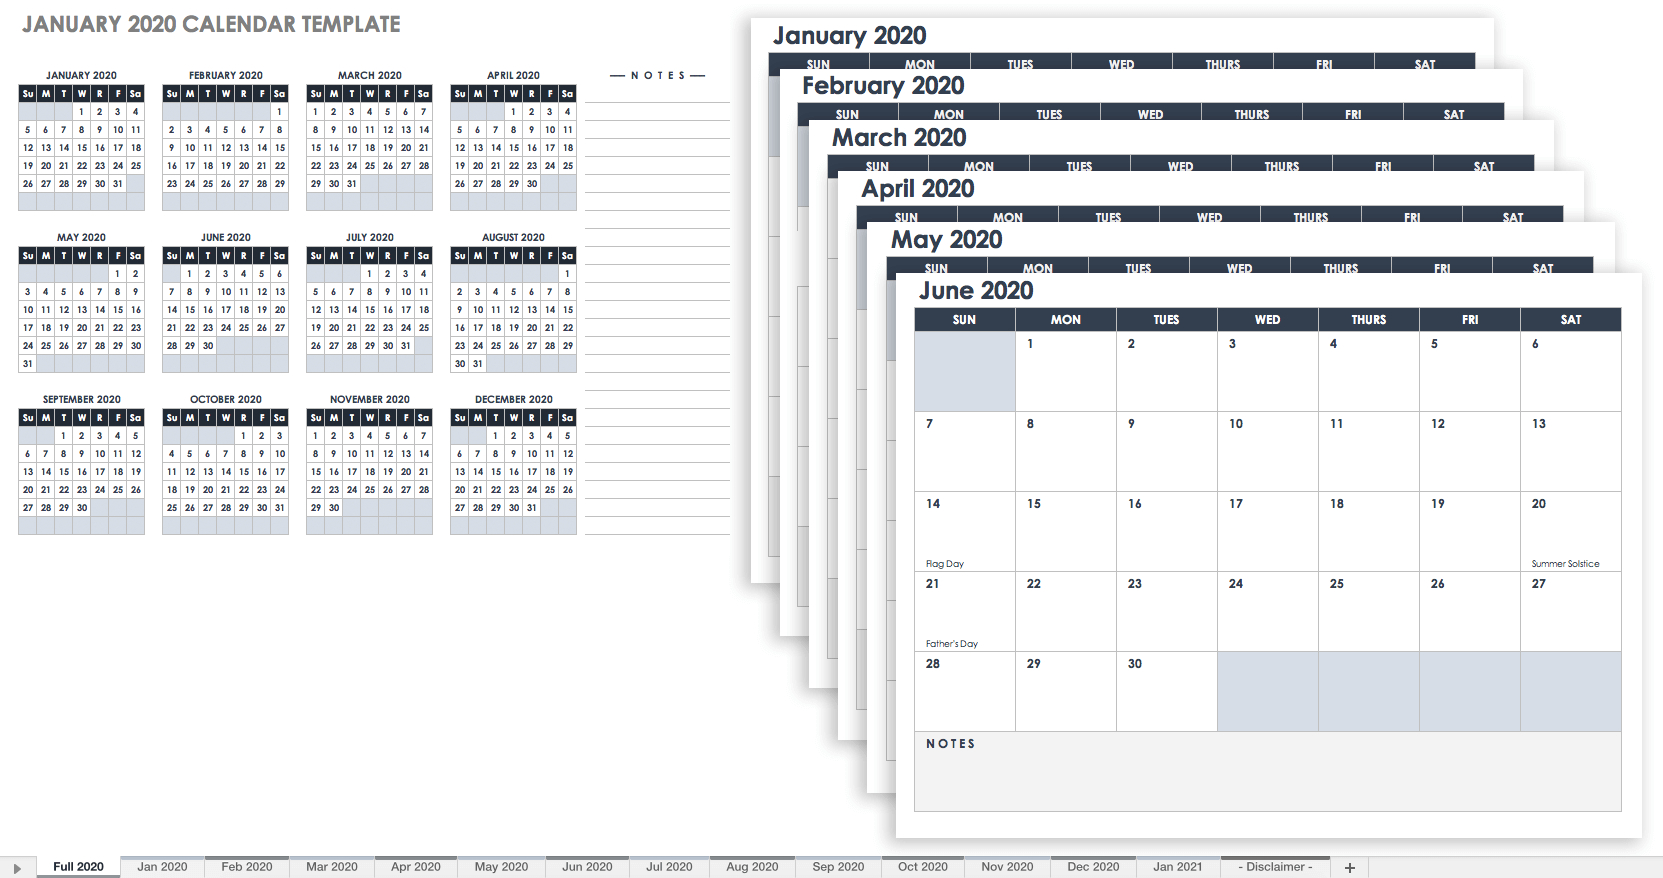 15 Free Monthly Calendar Templates | Smartsheet in Free Fillable Printable 2019 2020 Calendar